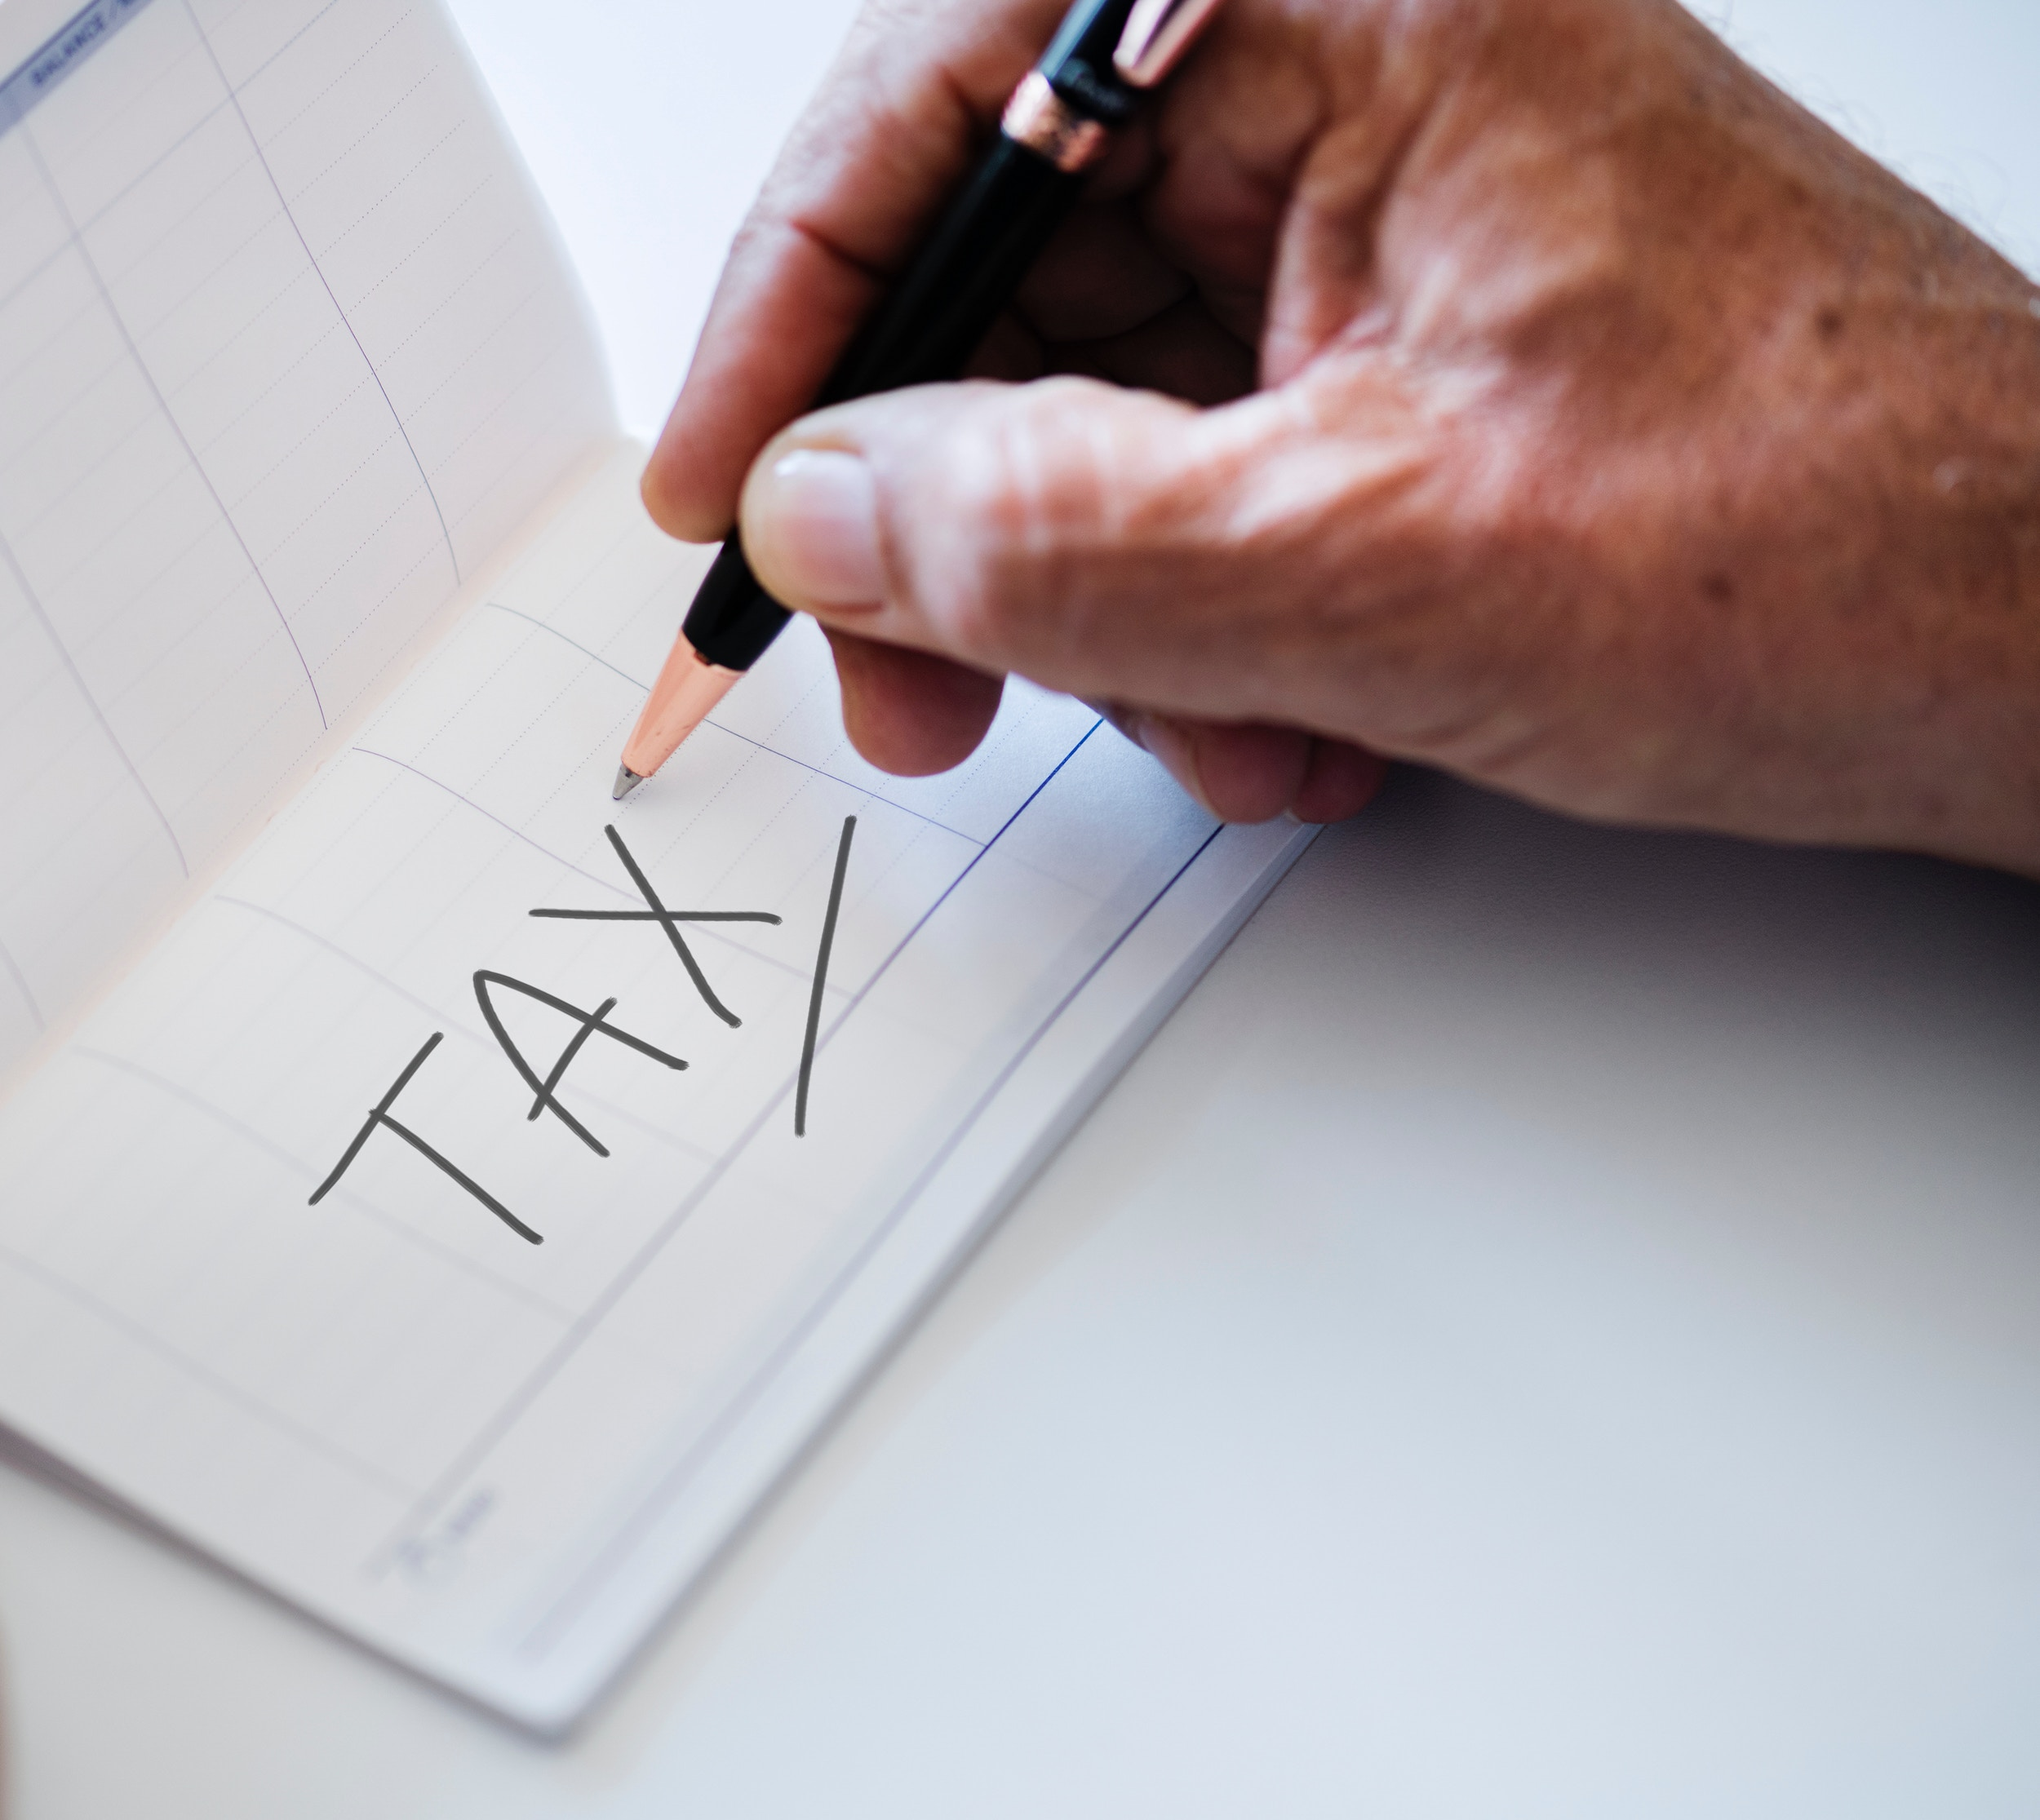 Income tax preparation can be a tedious task, let our local tax experts guide you through the ins and outs of filing your tax return. Whether it is a personal tax return or a corporate, Supreme Multi-Services is always up to date on the current, state and federal tax laws.